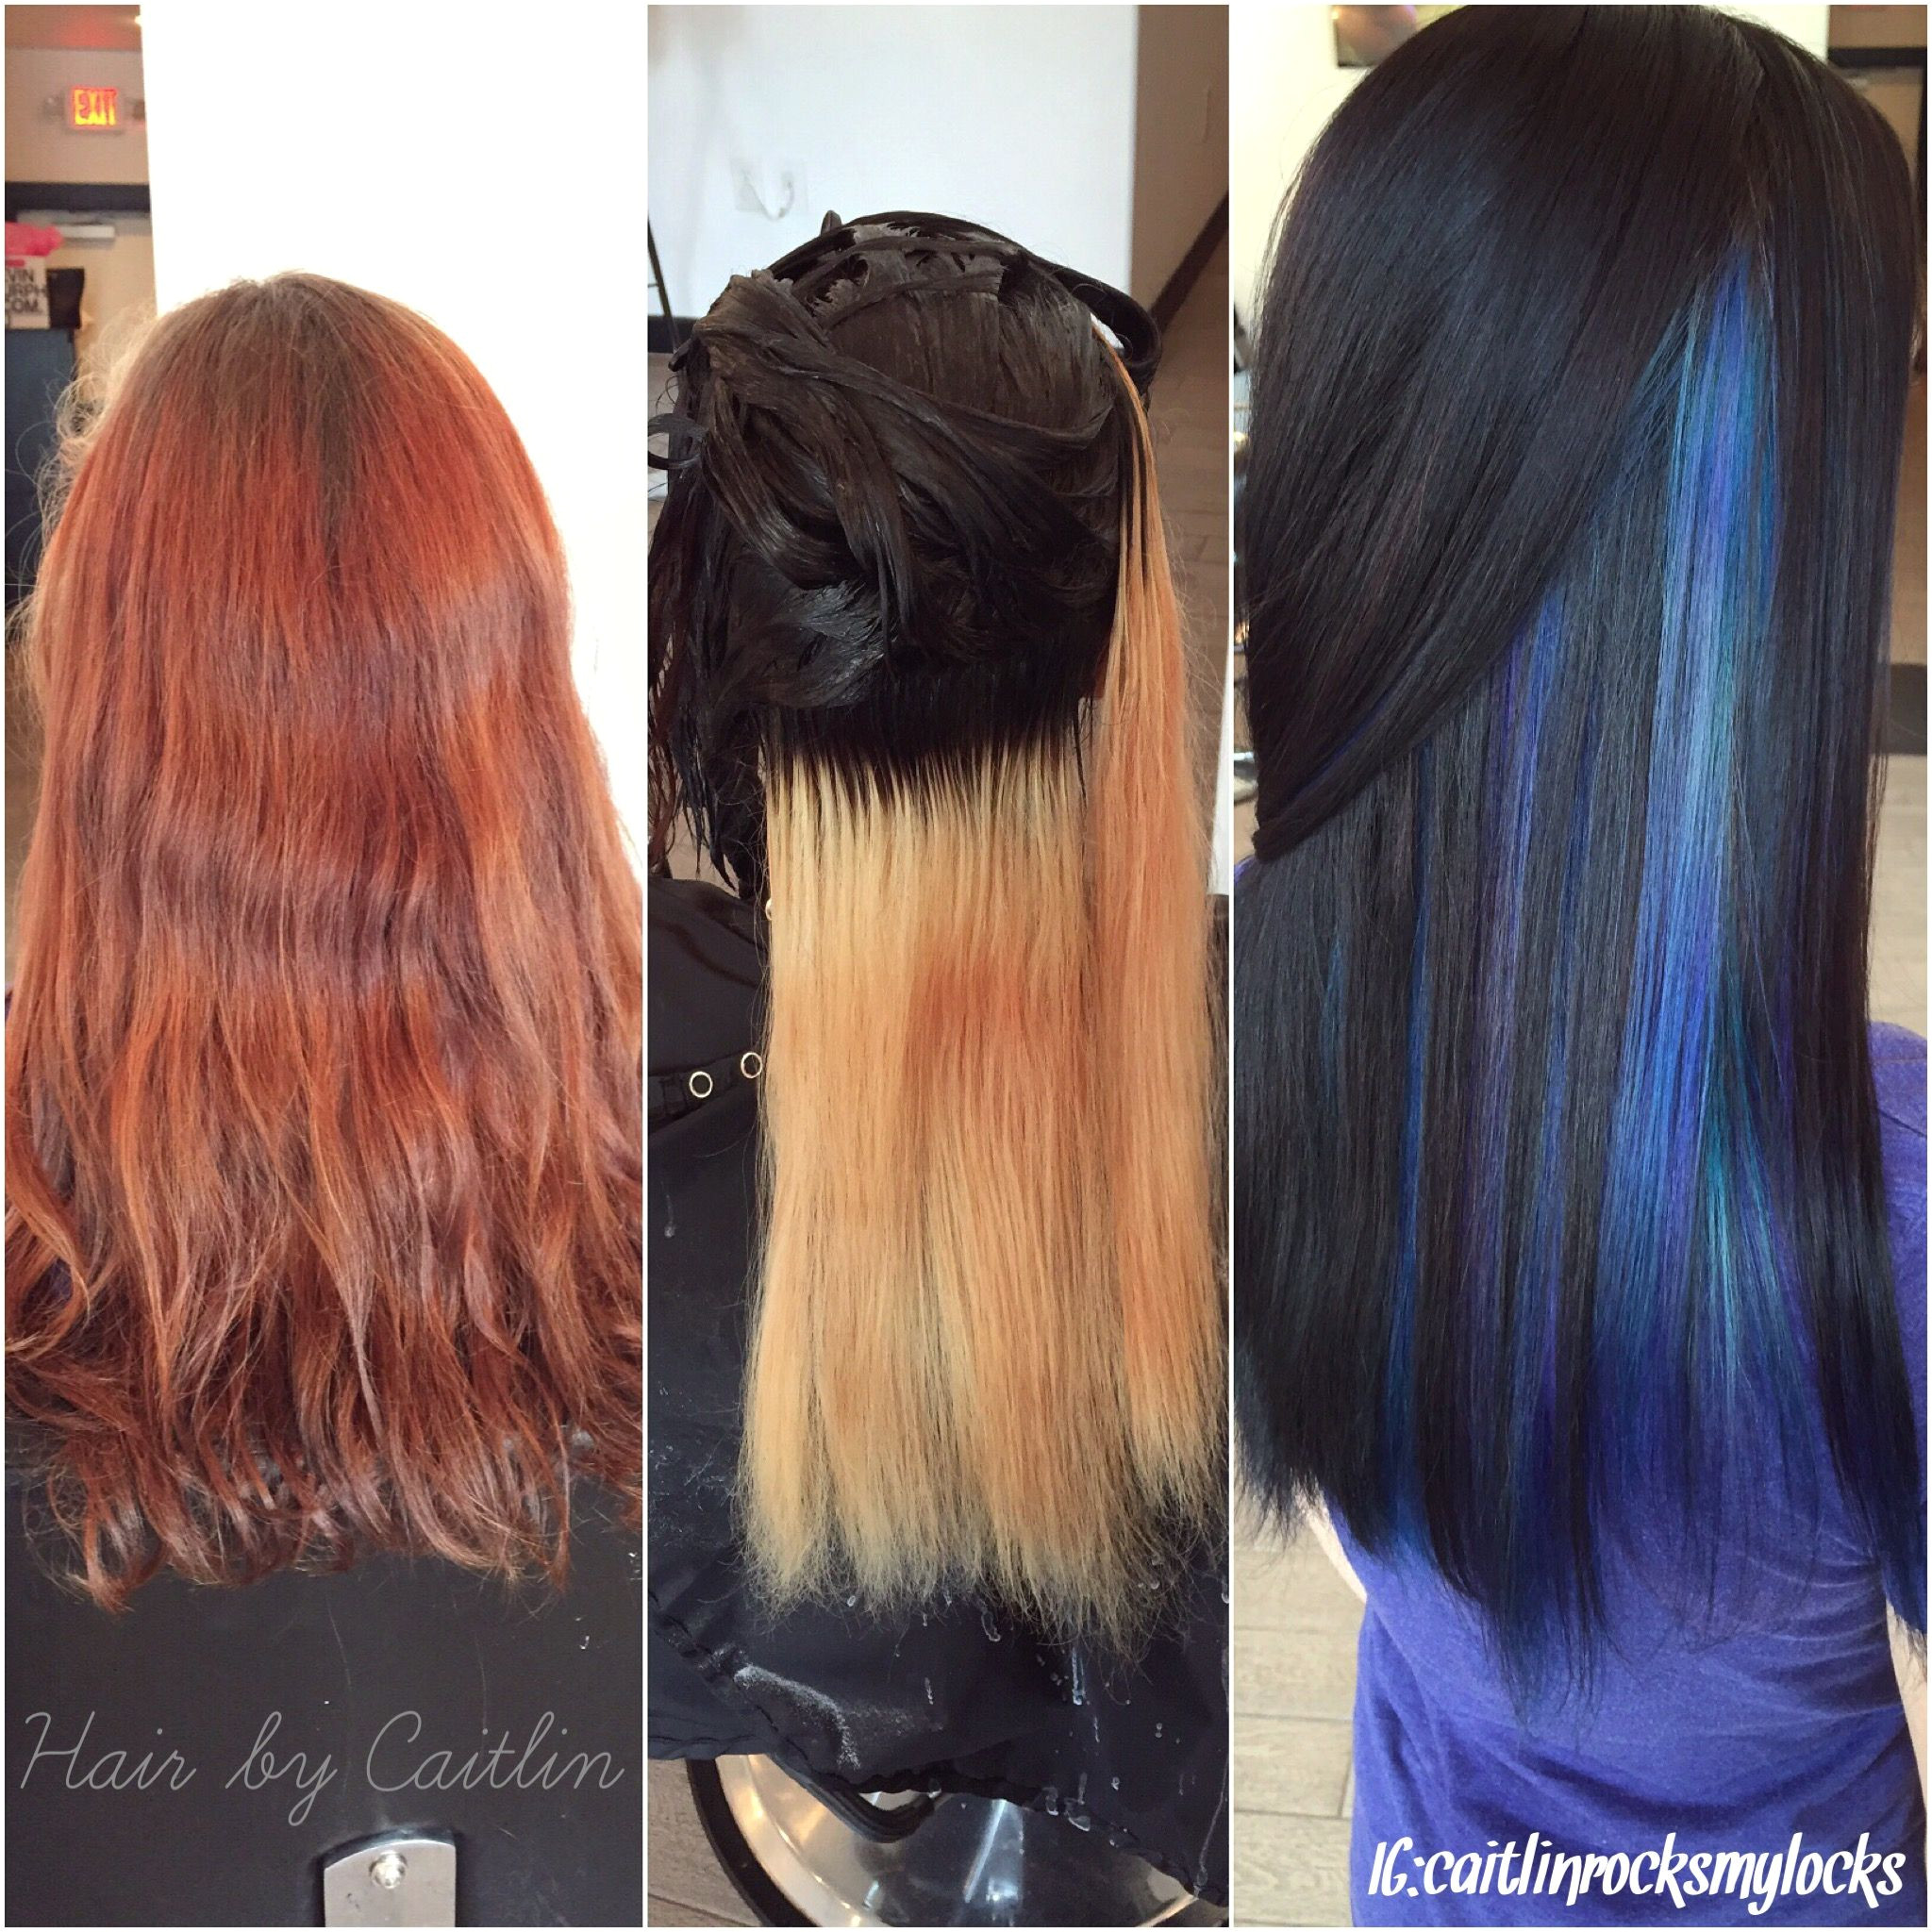 Start to 1st process to finish Purple and blue hair Peacock hair Galaxy hair Jewel tone hair Colorful hair Dark hair with colors Blue hair